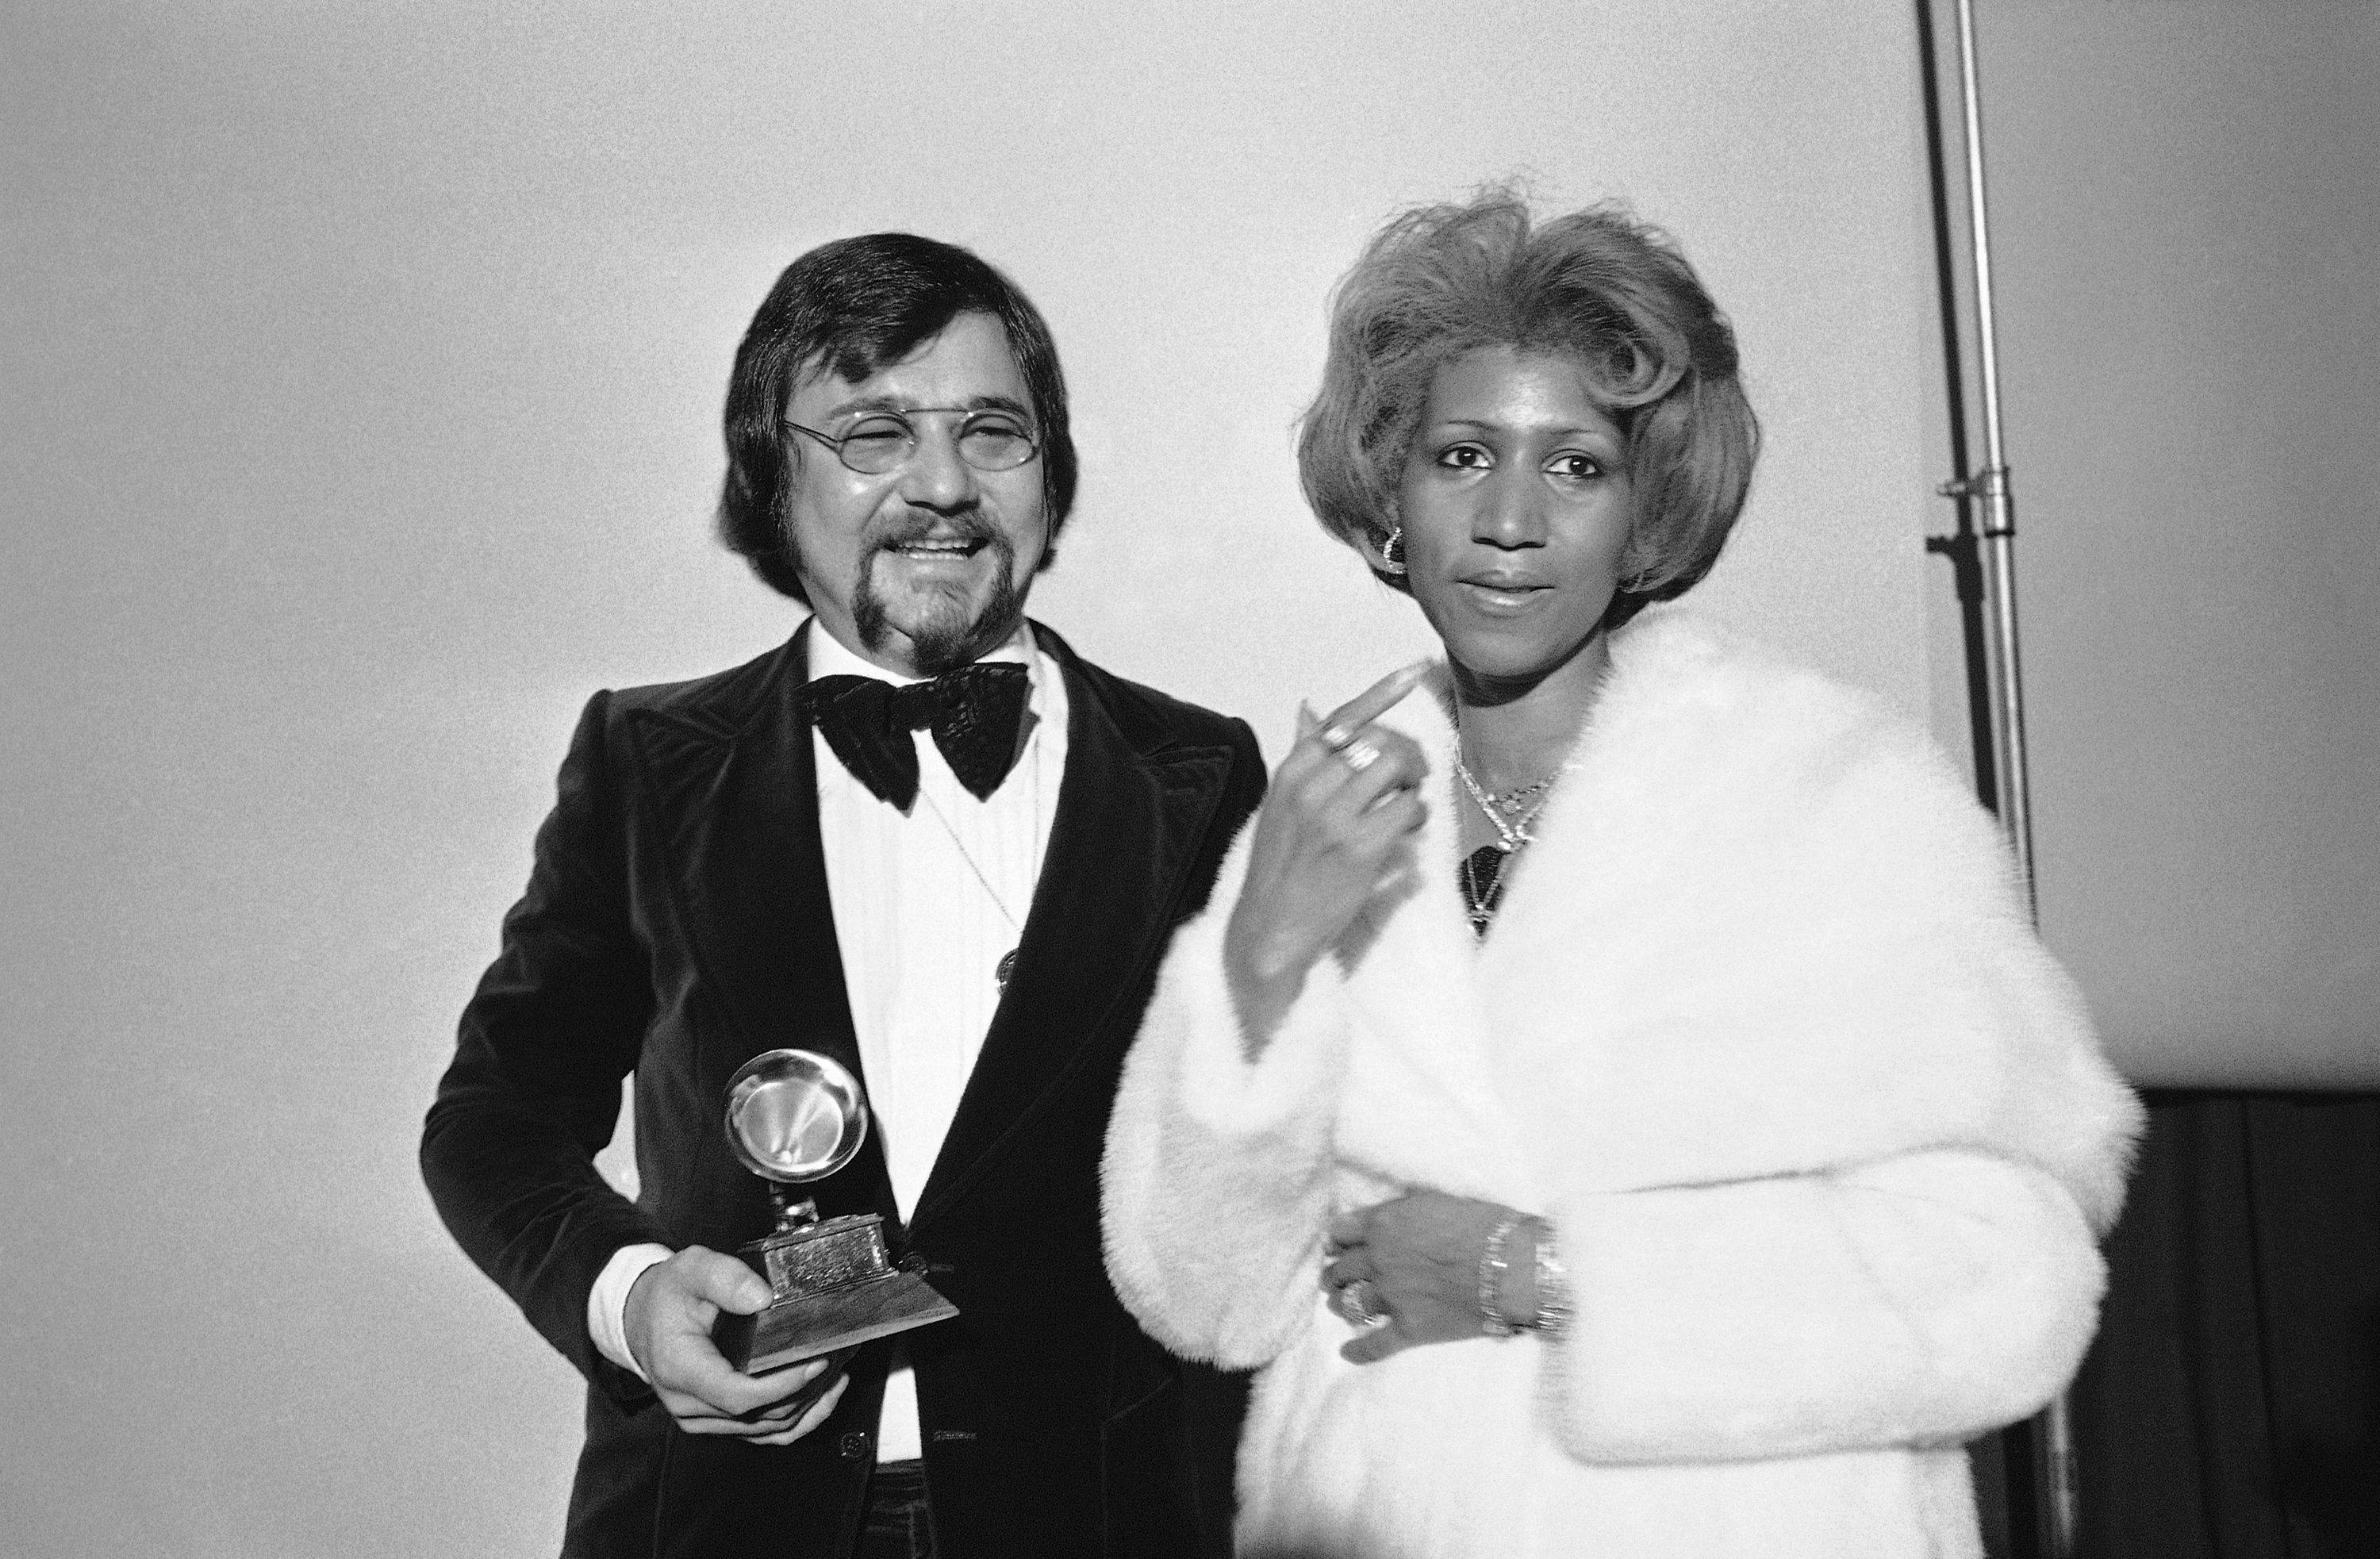 Sylvester Levay and Aretha Franklin,right, are shown at the Grammy Awards in Los Angeles, Feb. 28, 1976.